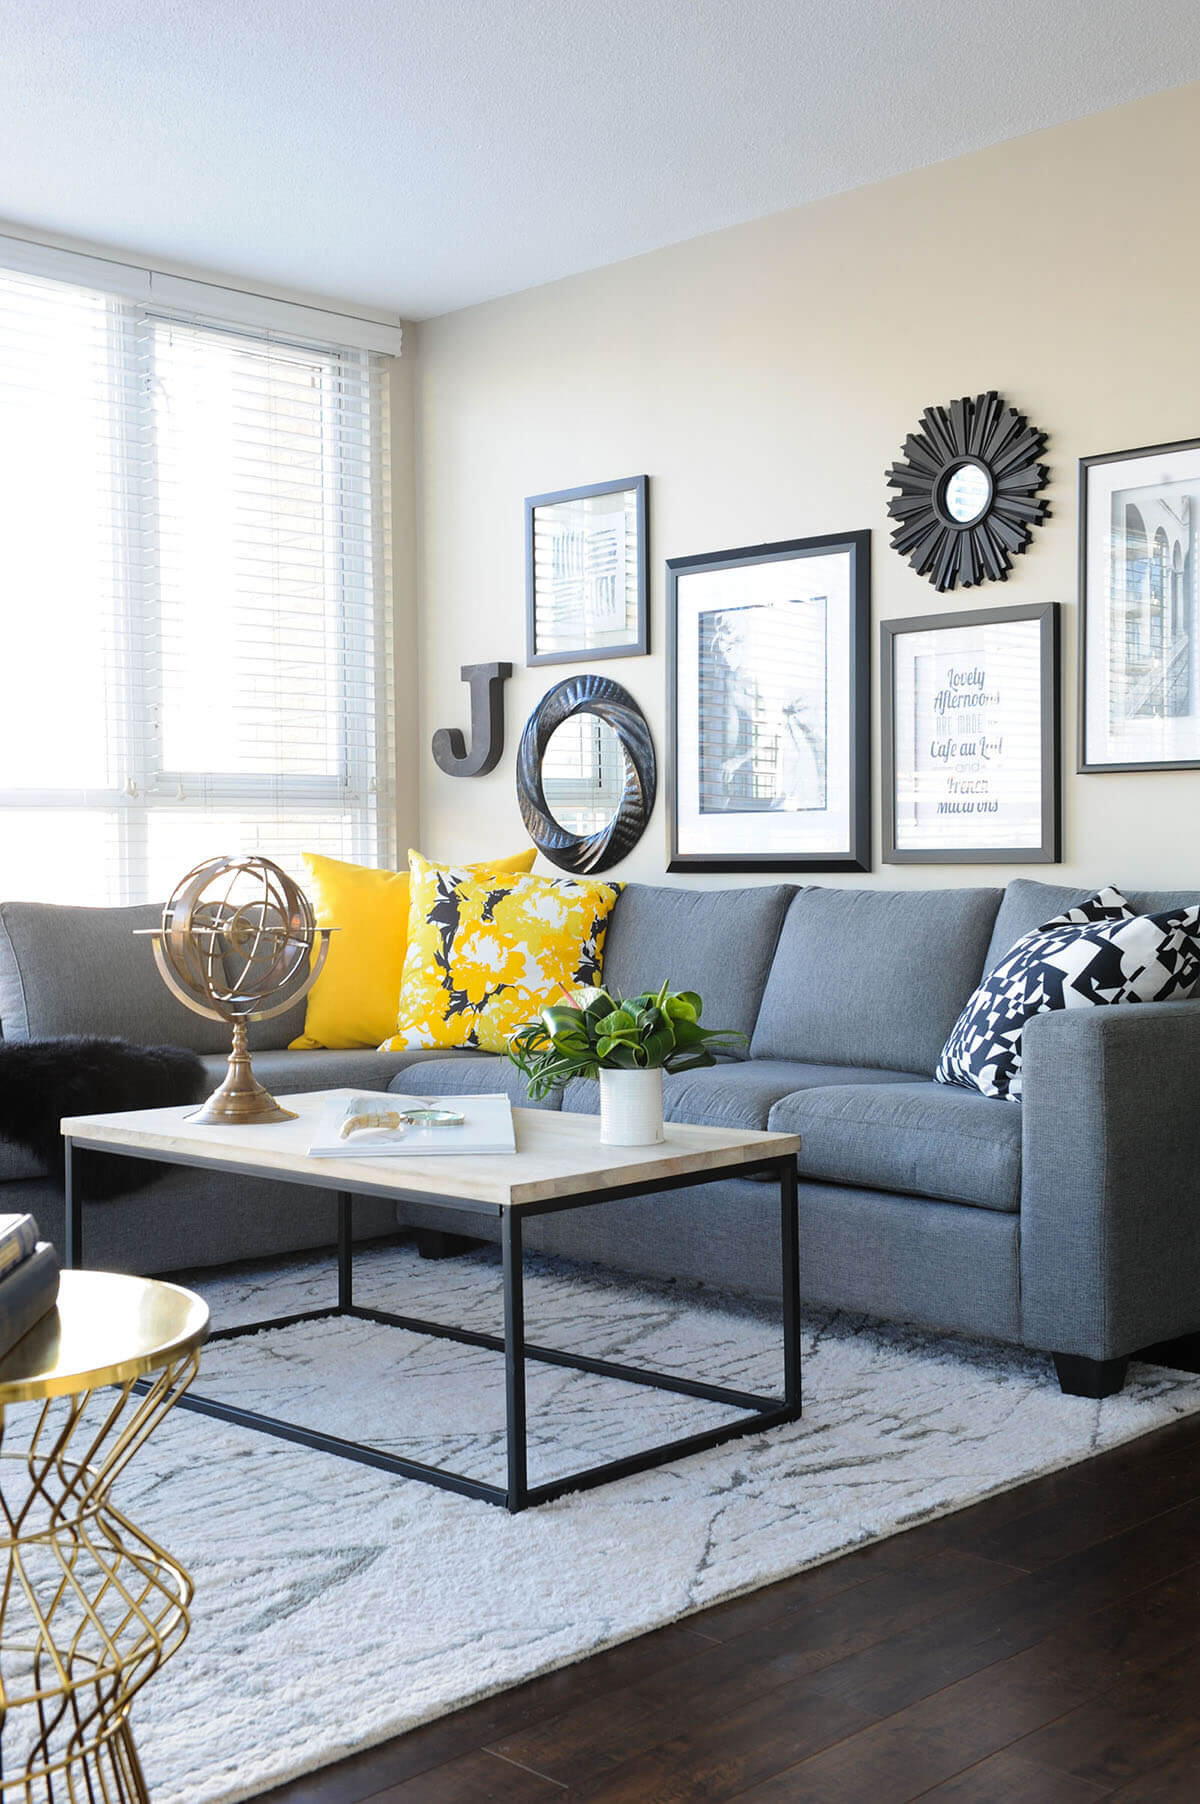 25+ Best Small Living Room Decor and Design Ideas for 2021